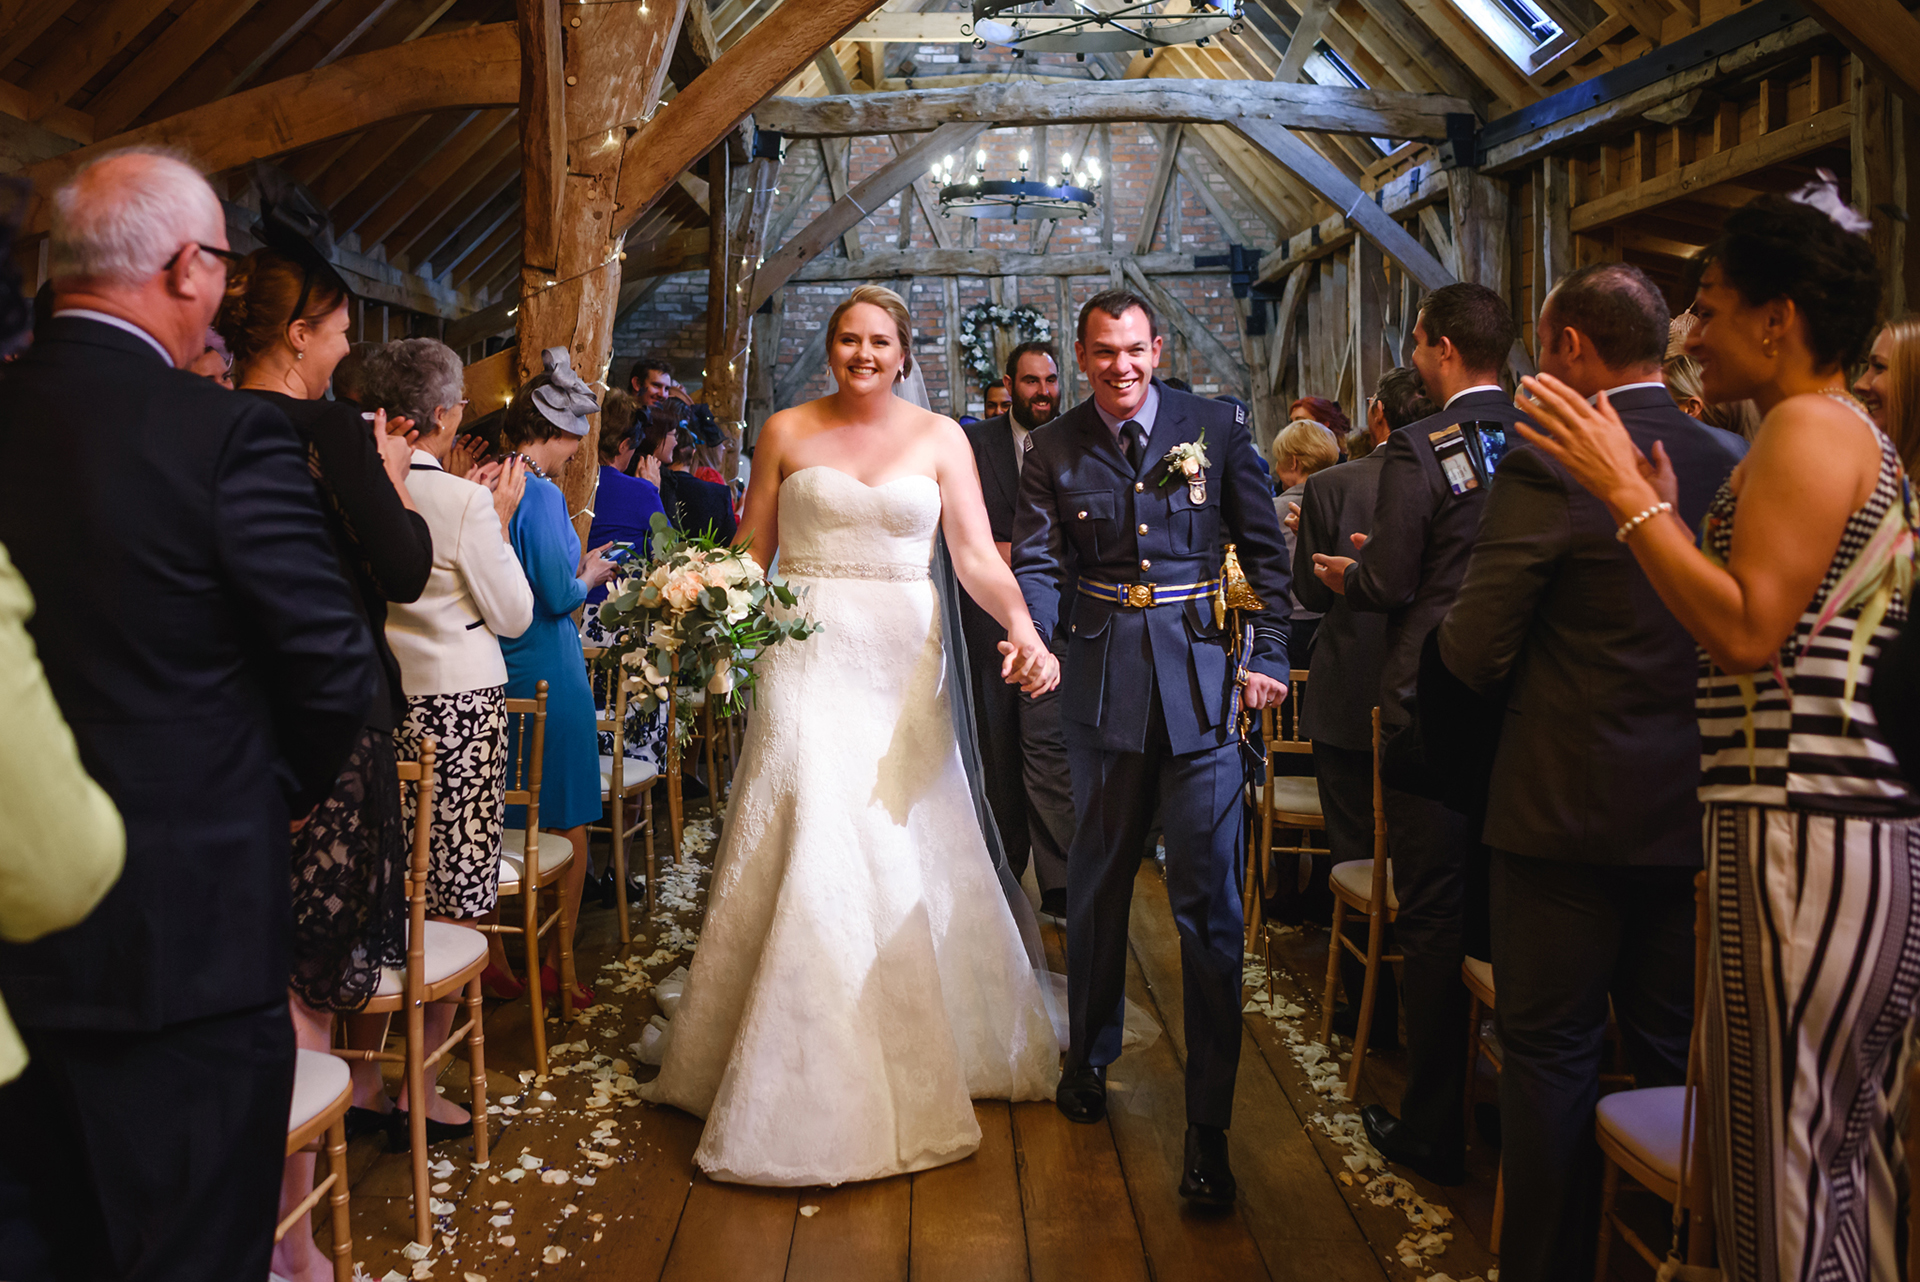 The newlyweds celebrate after saying their wedding vows in the Rickety Barn at Bassmead Manor Barns